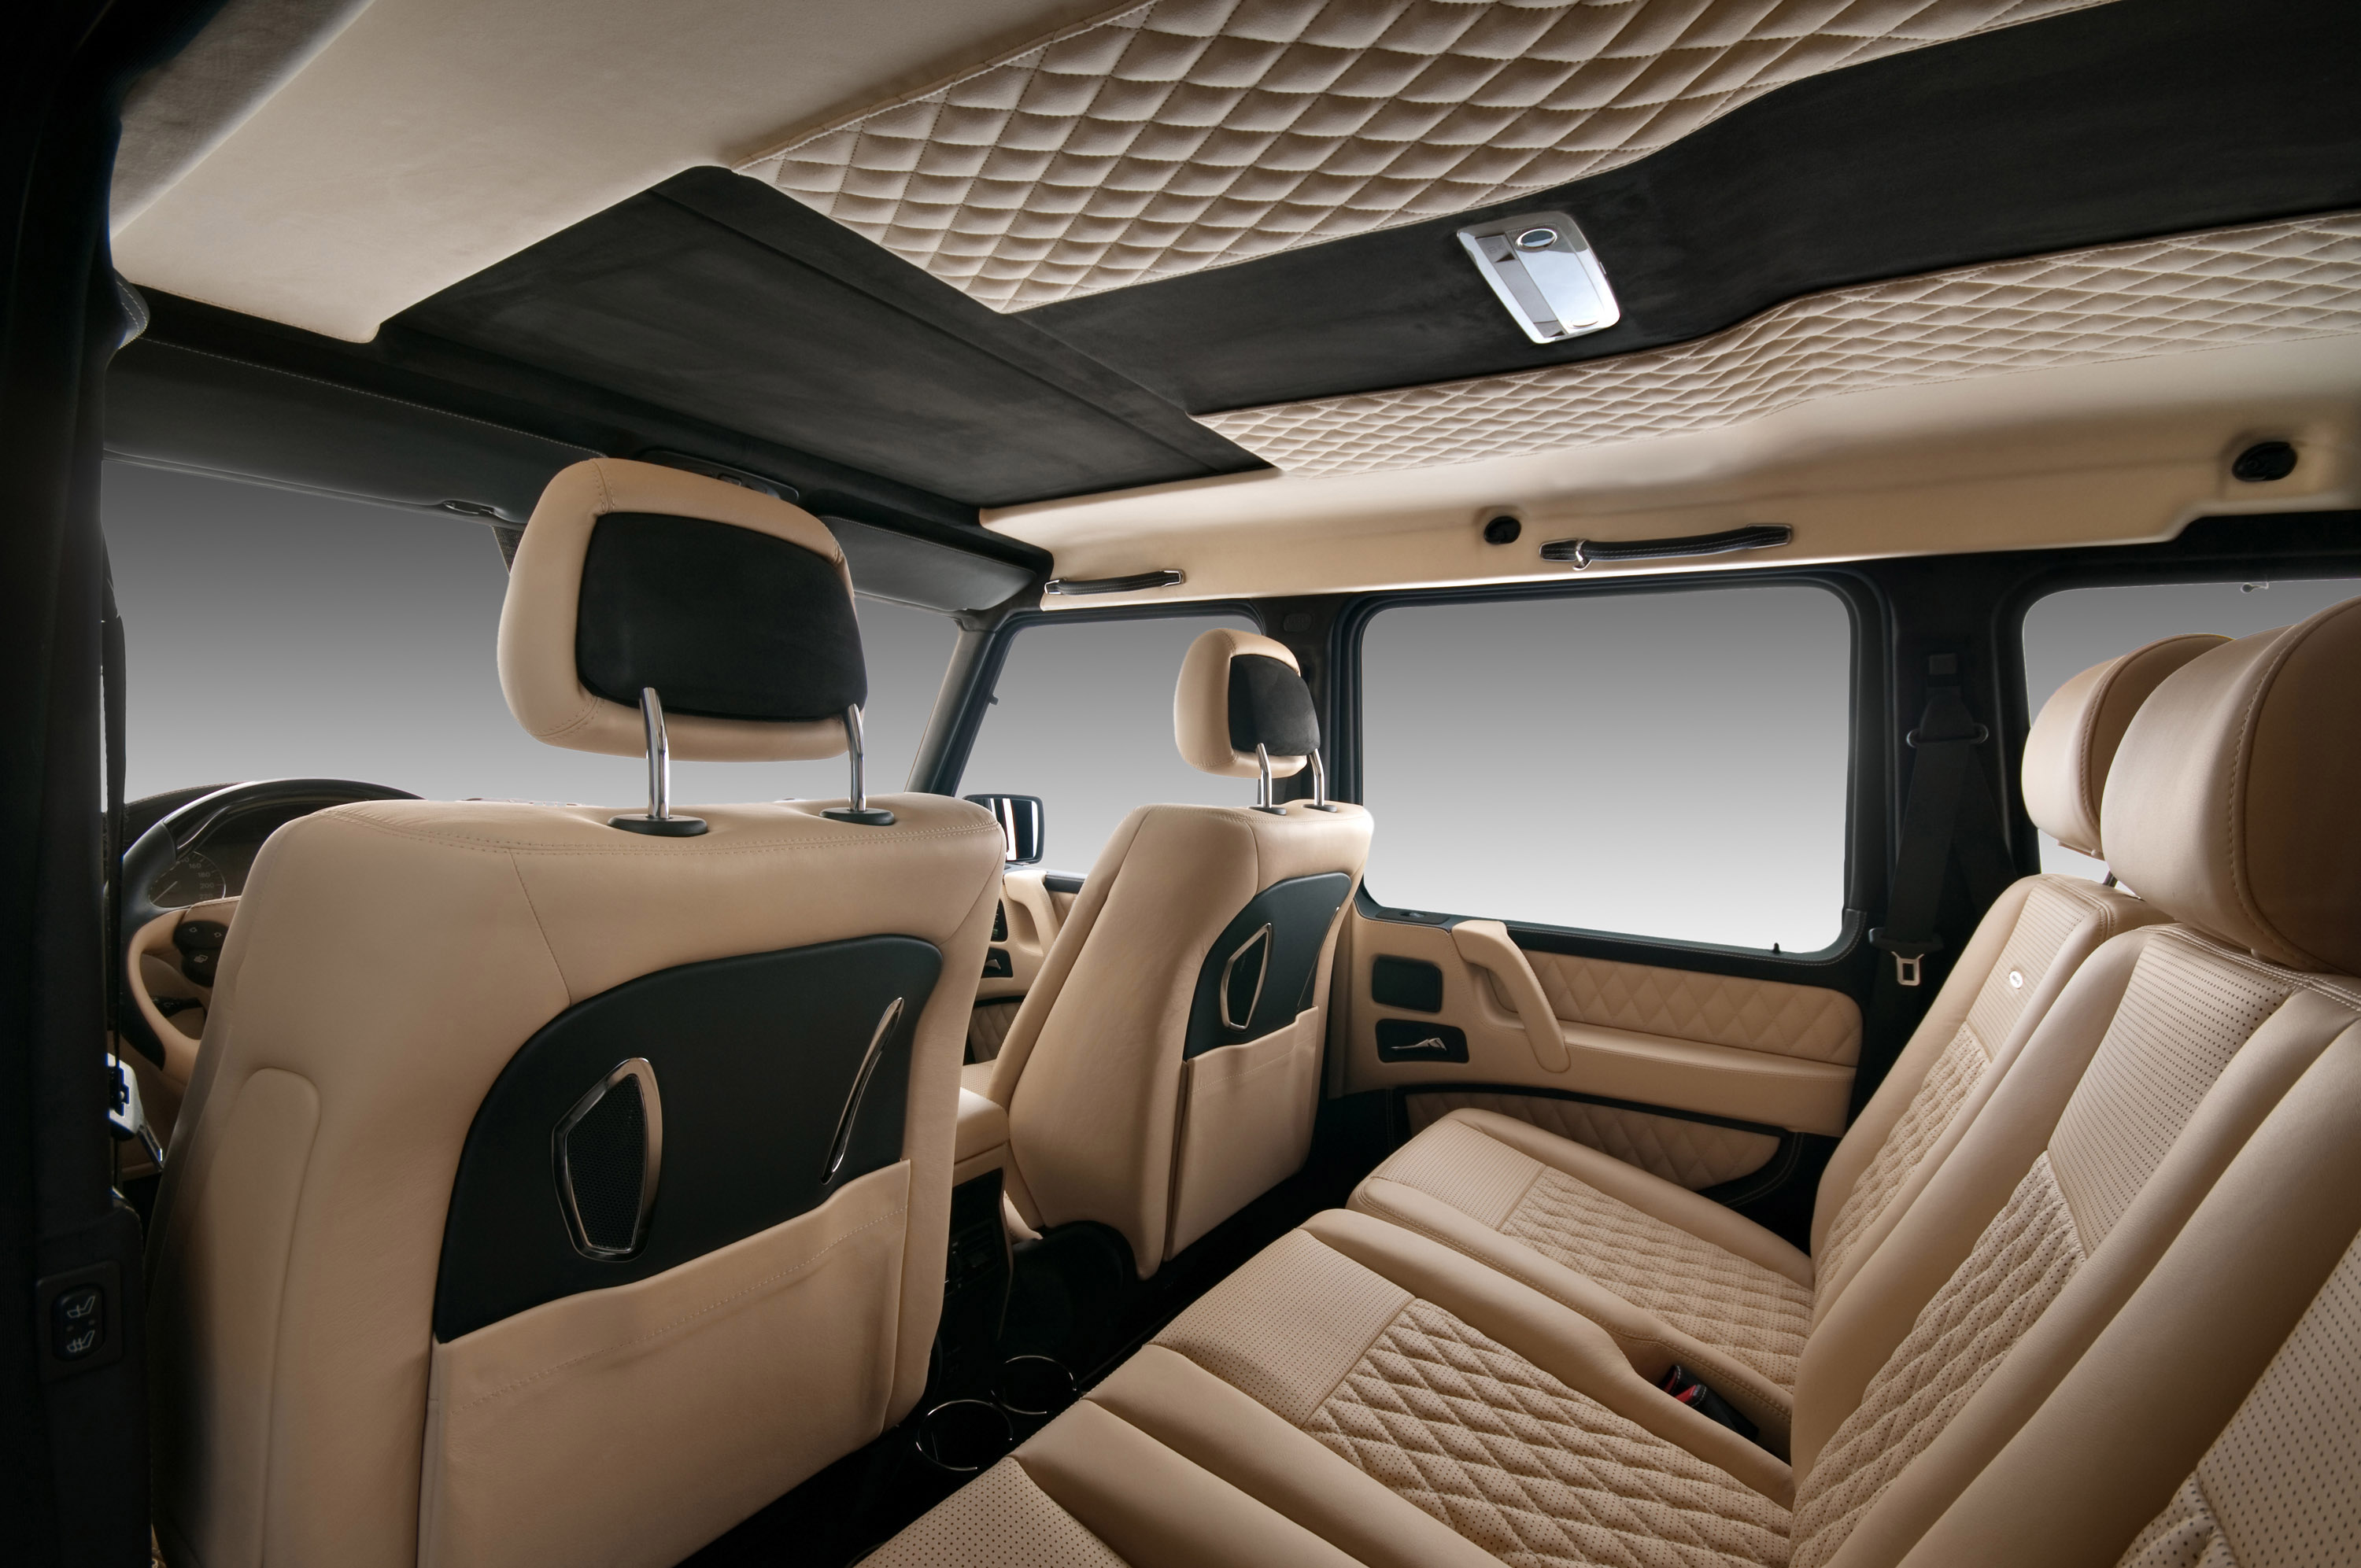 vilner mercedes benz g class picture 61690. Black Bedroom Furniture Sets. Home Design Ideas